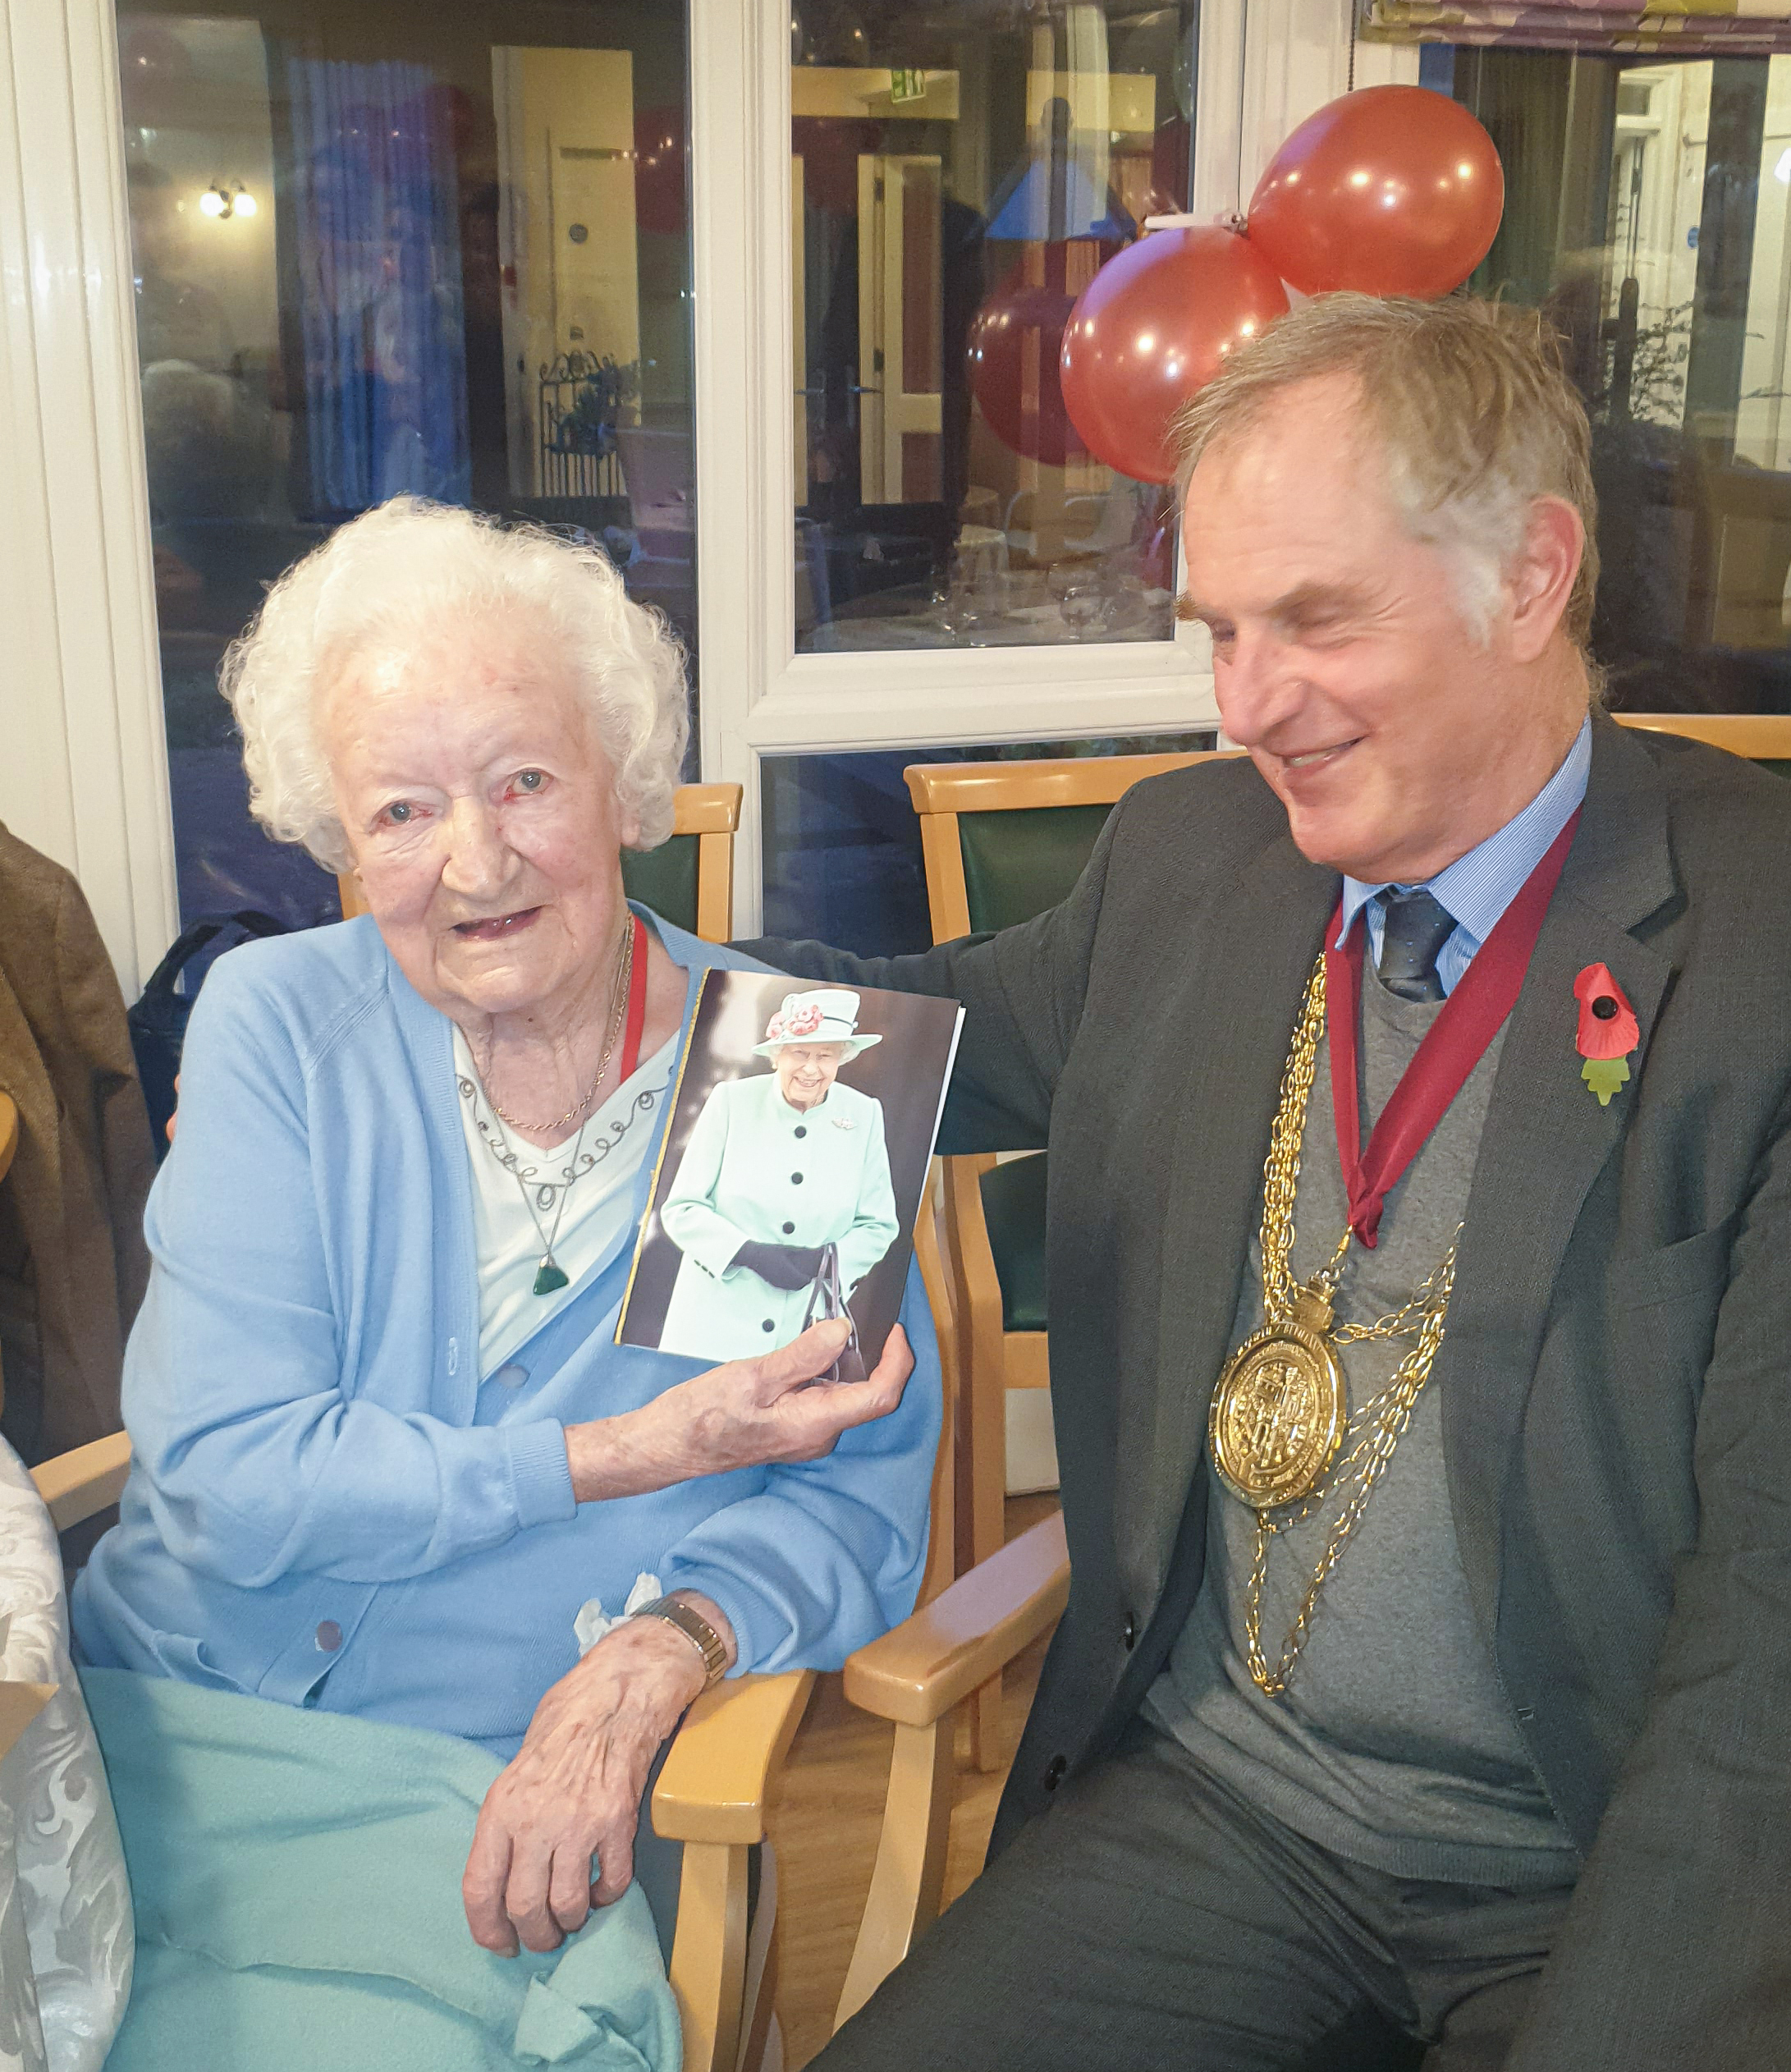 Mayor of Colchester, Nick Cope presenting Marjorie with her card from the Queen